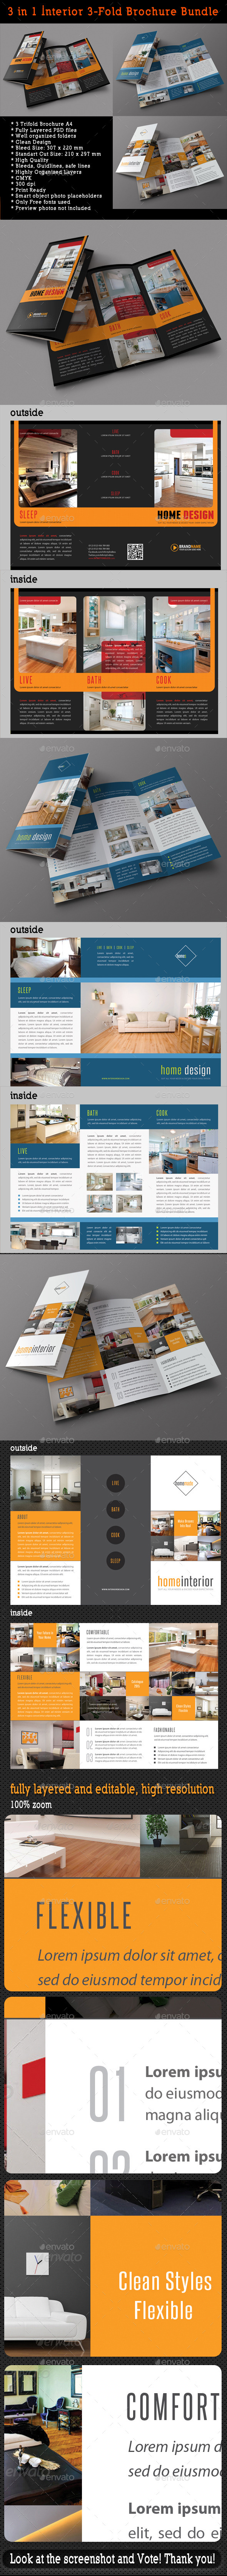 GraphicRiver 3 in 1 Interior 3-Fold Brochure Bundle 04 8872970